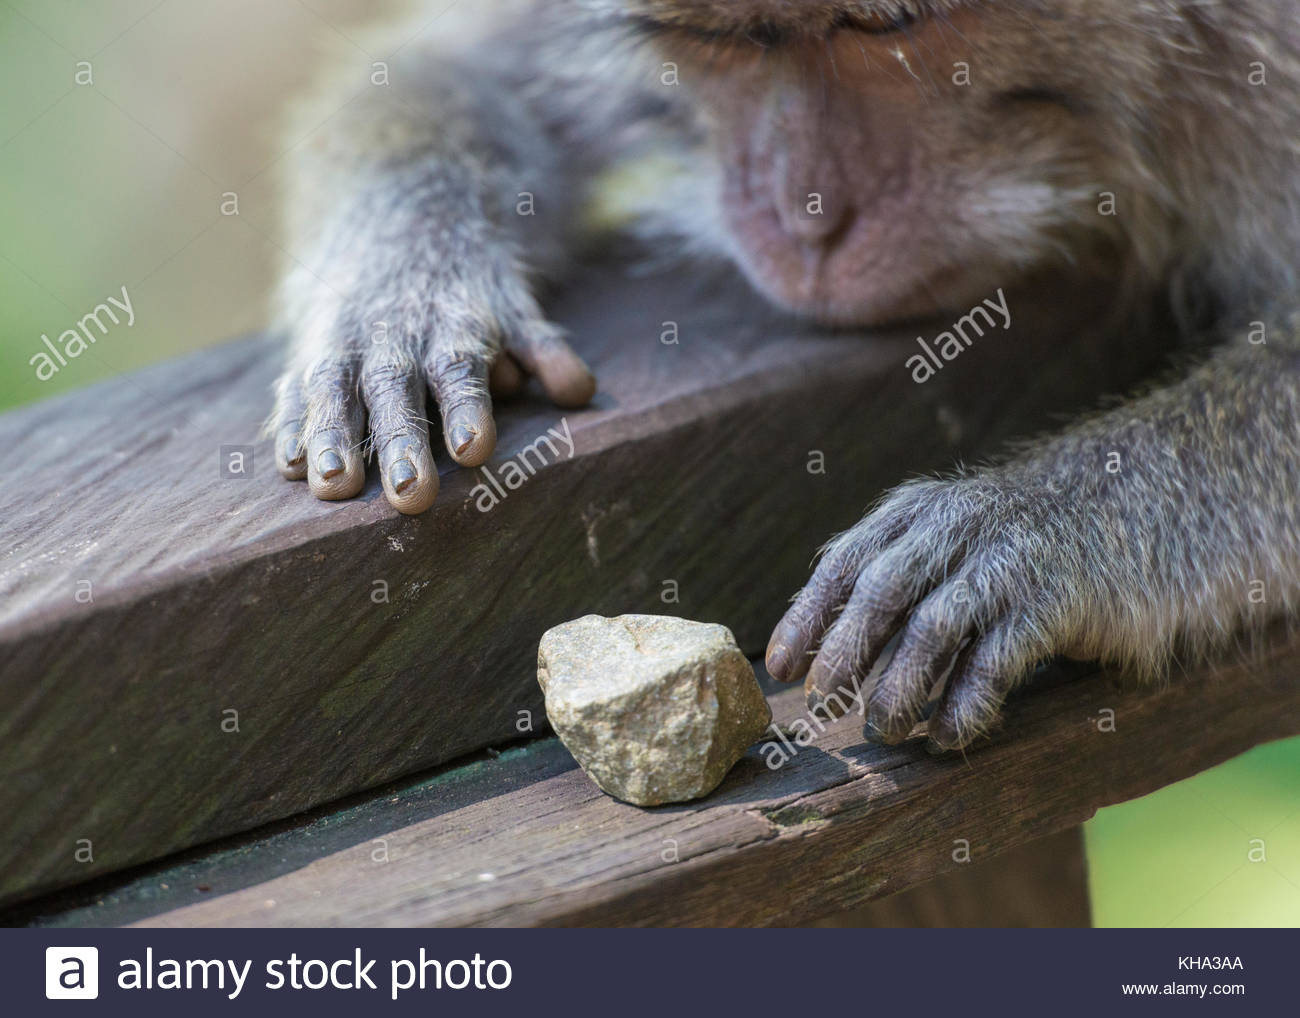 Monkey (macaca fascicularis) playing with a rock in the Sacred Monkey Forest Sanctuary in Ubud, Bali, Indonesia. - Stock Image